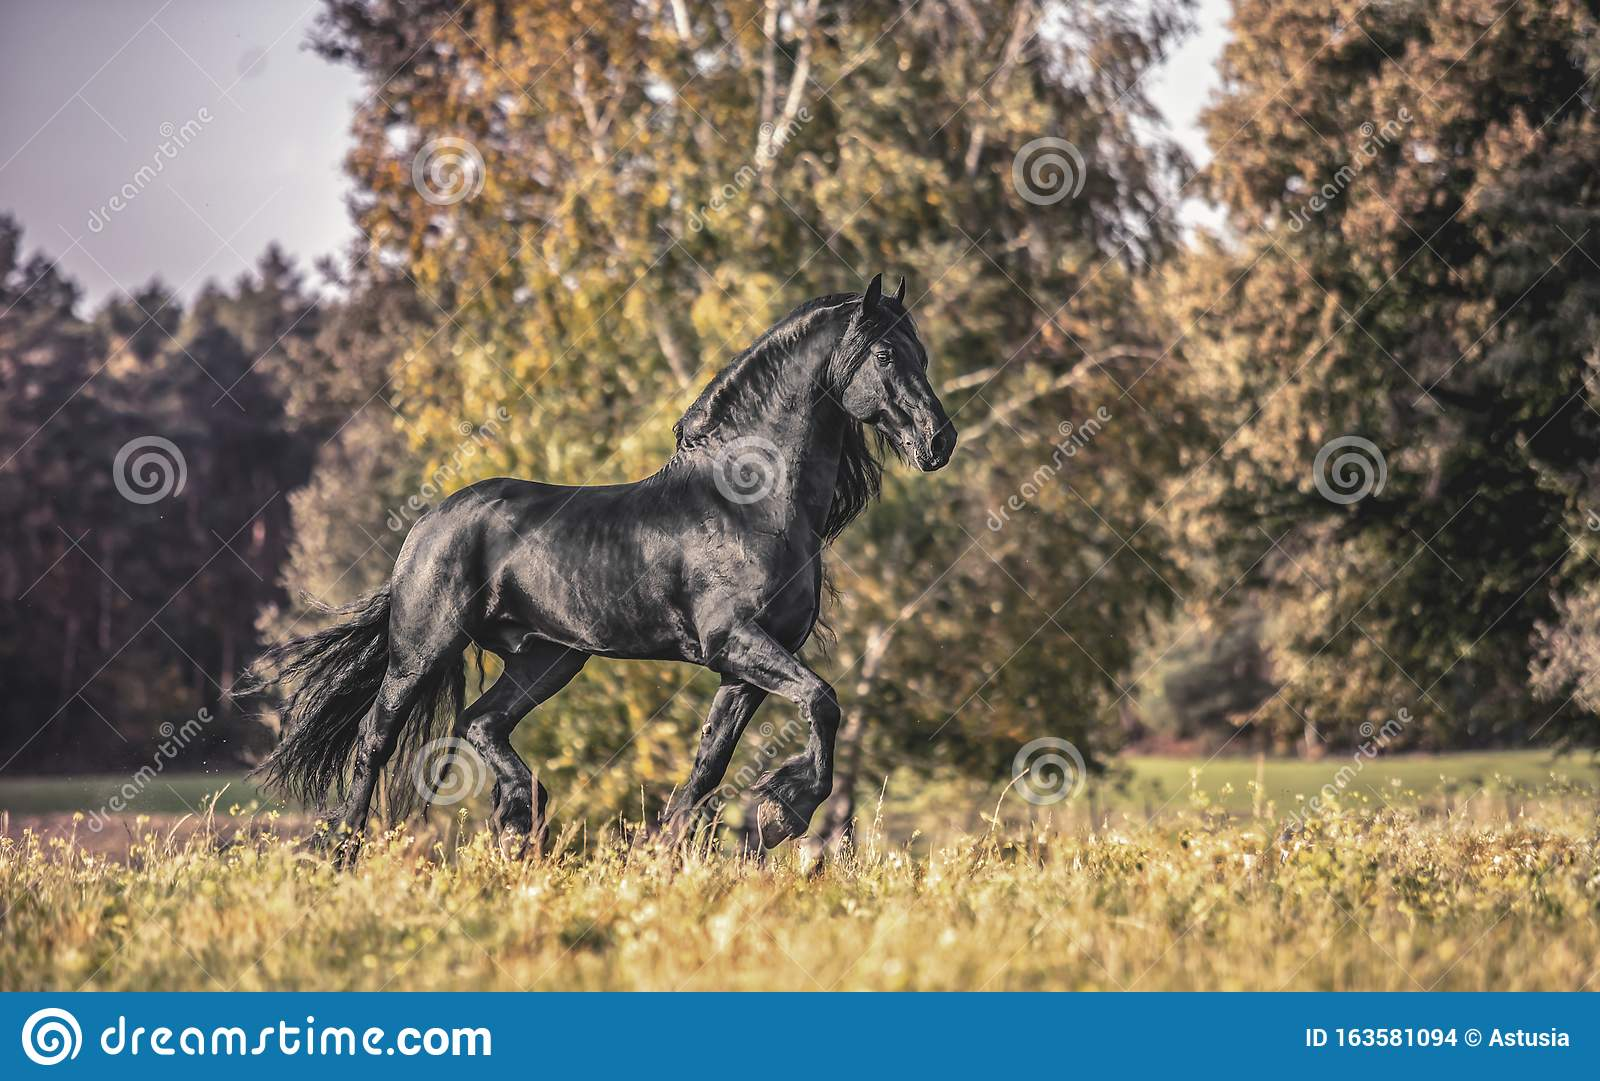 Beautiful Black Horse The Friesian Stallion Gallops On The Autumn Meadow Stock Photo Image Of Horse Action 163581094